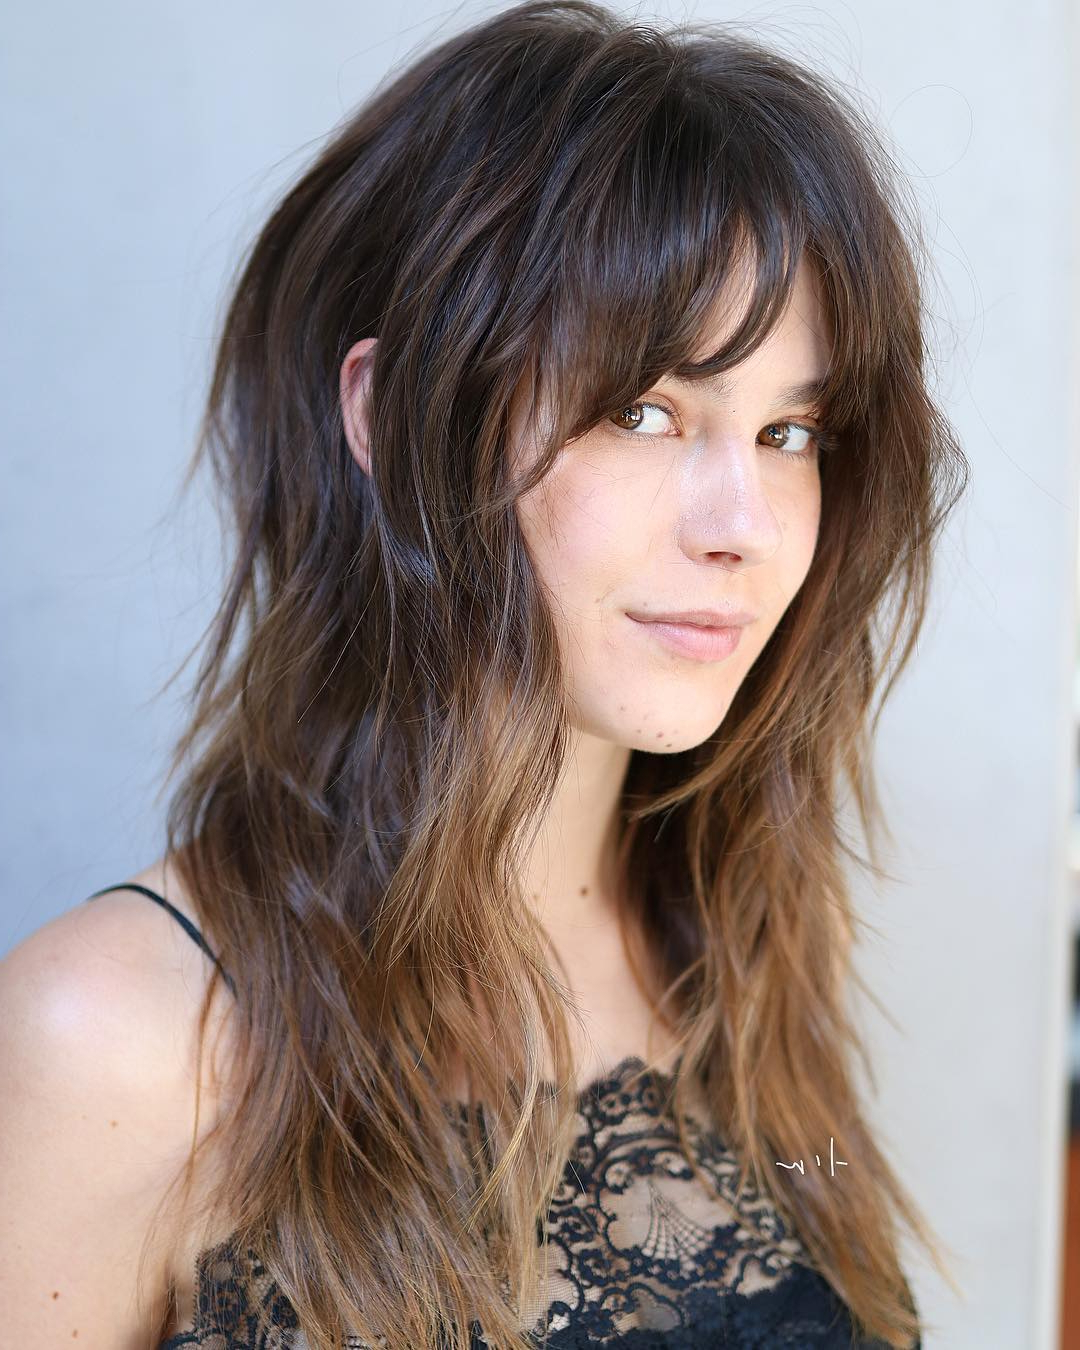 40 Modern Shag Haircuts For Women To Make A Splash In Waves Of Color Shag Haircuts (View 14 of 20)